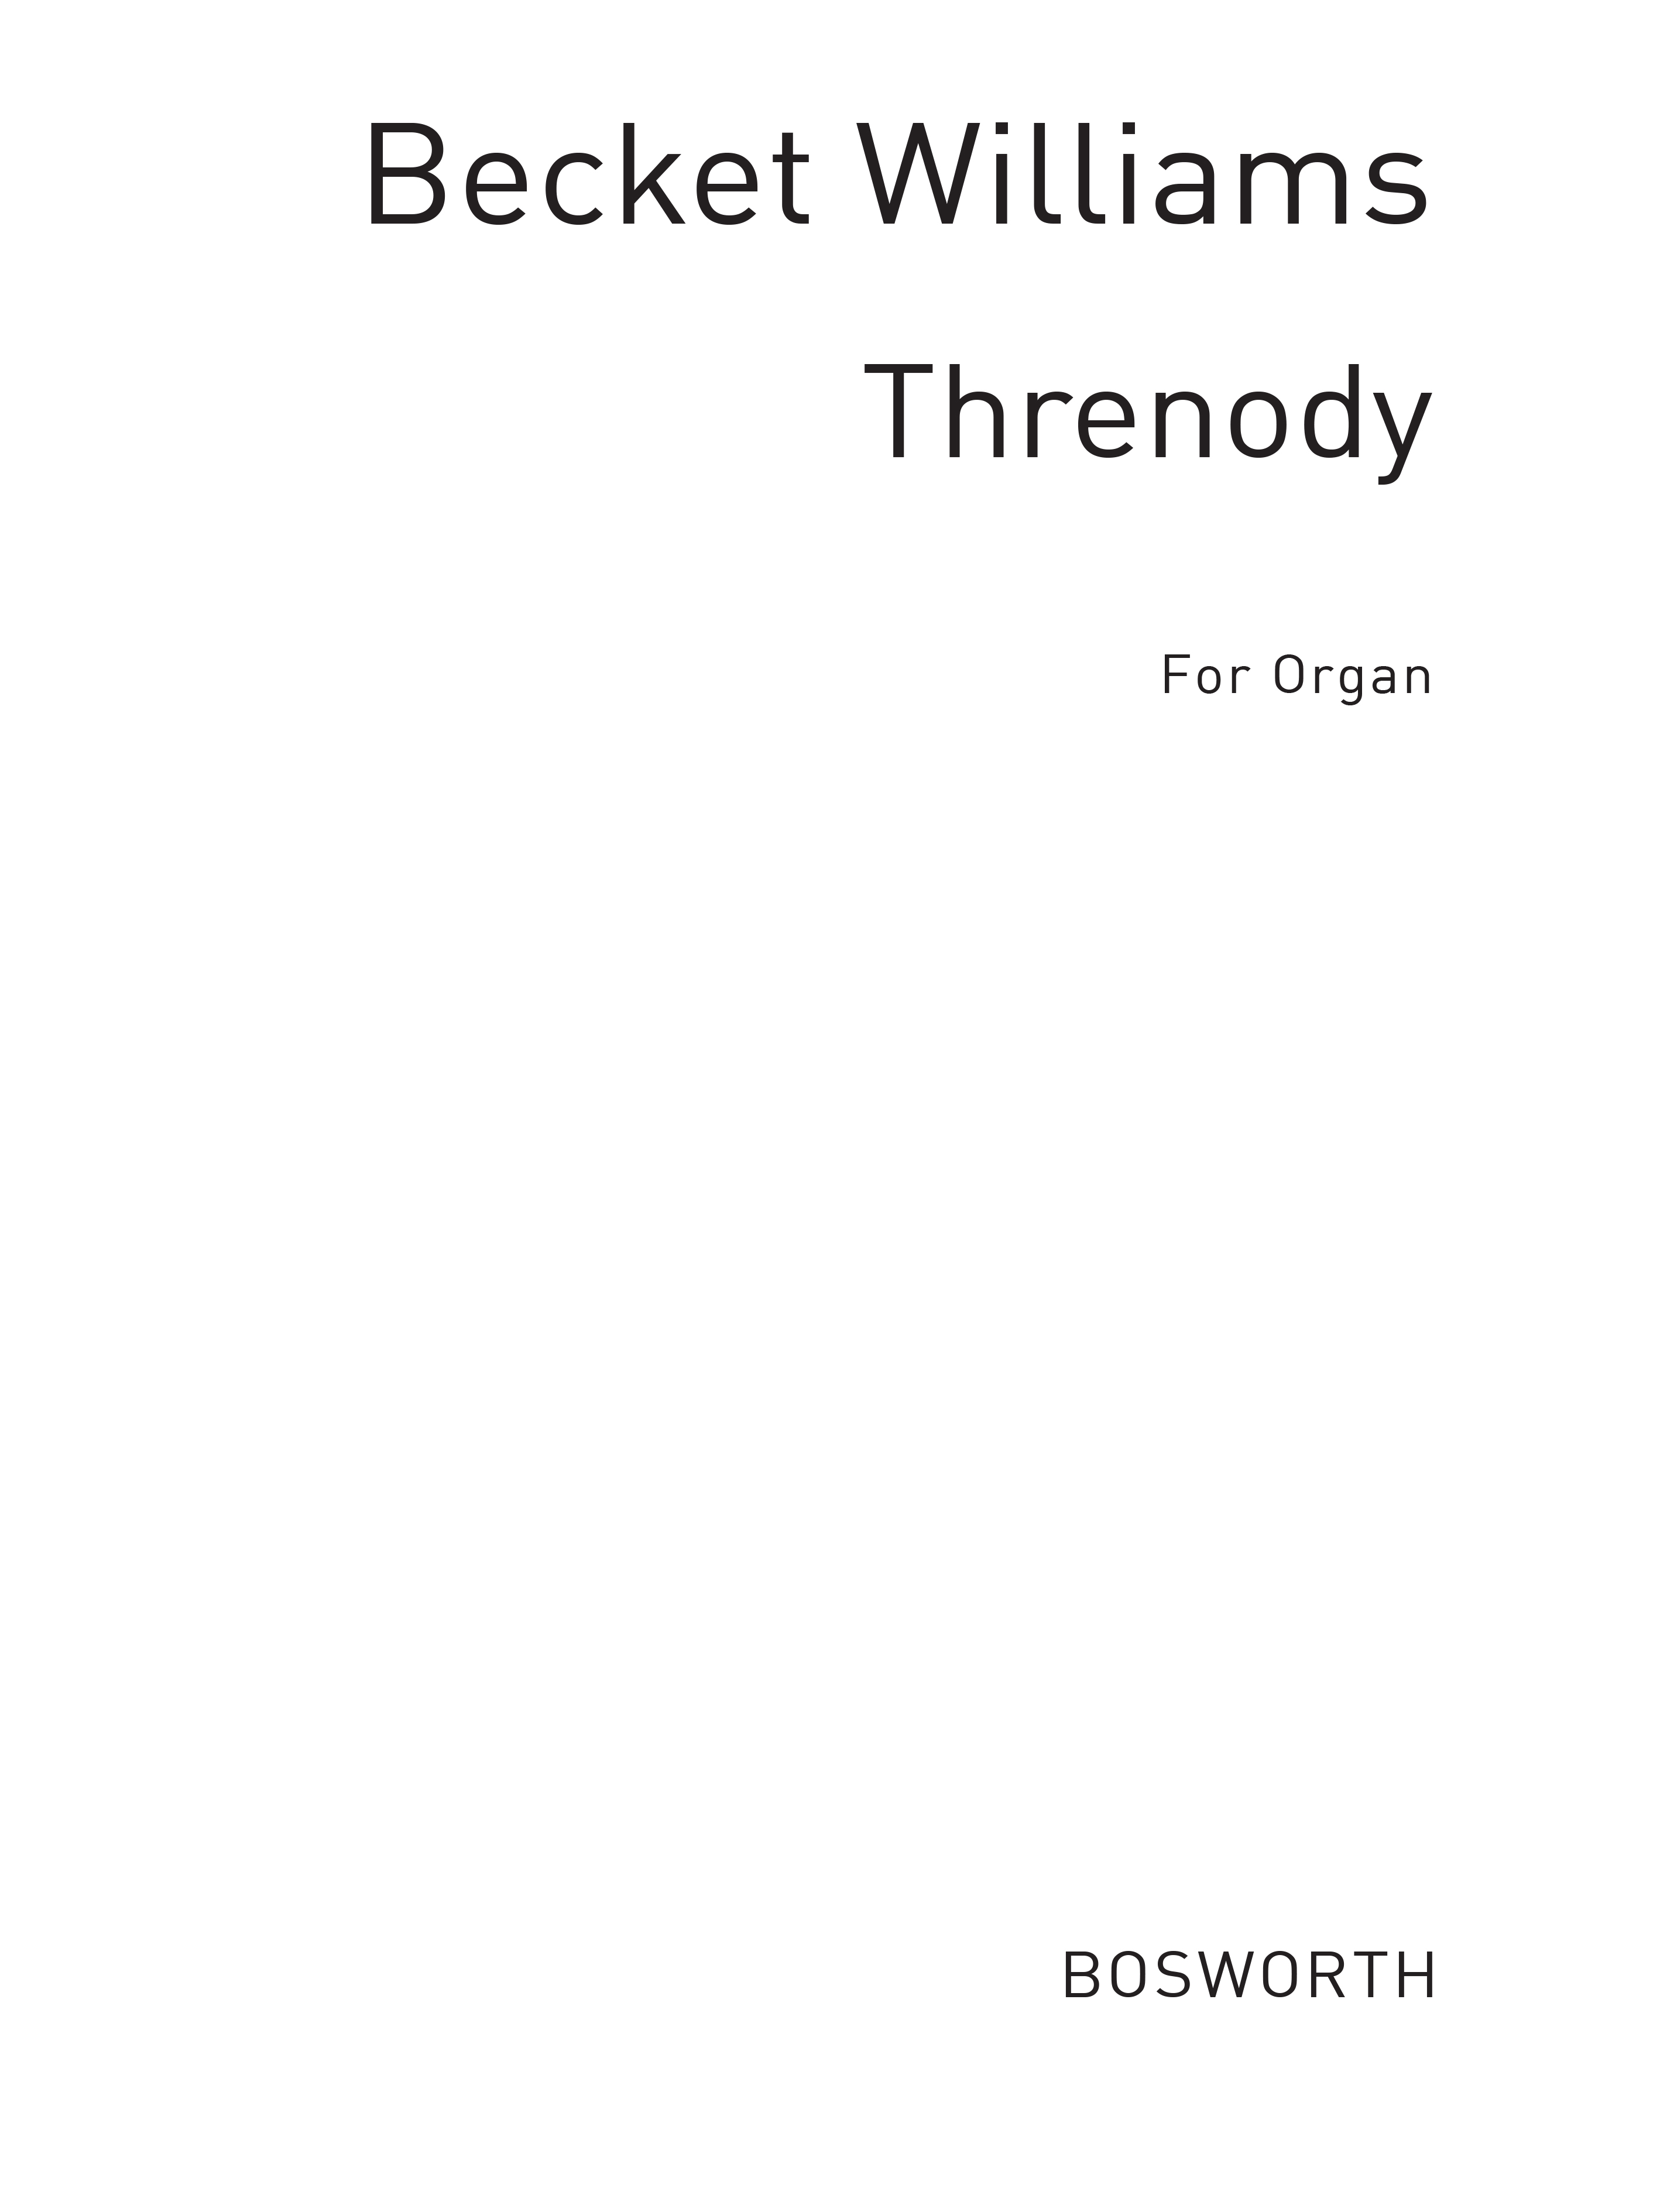 Christopher Williams Becket: Christopher A Becket Williams: Threnody For Organ: